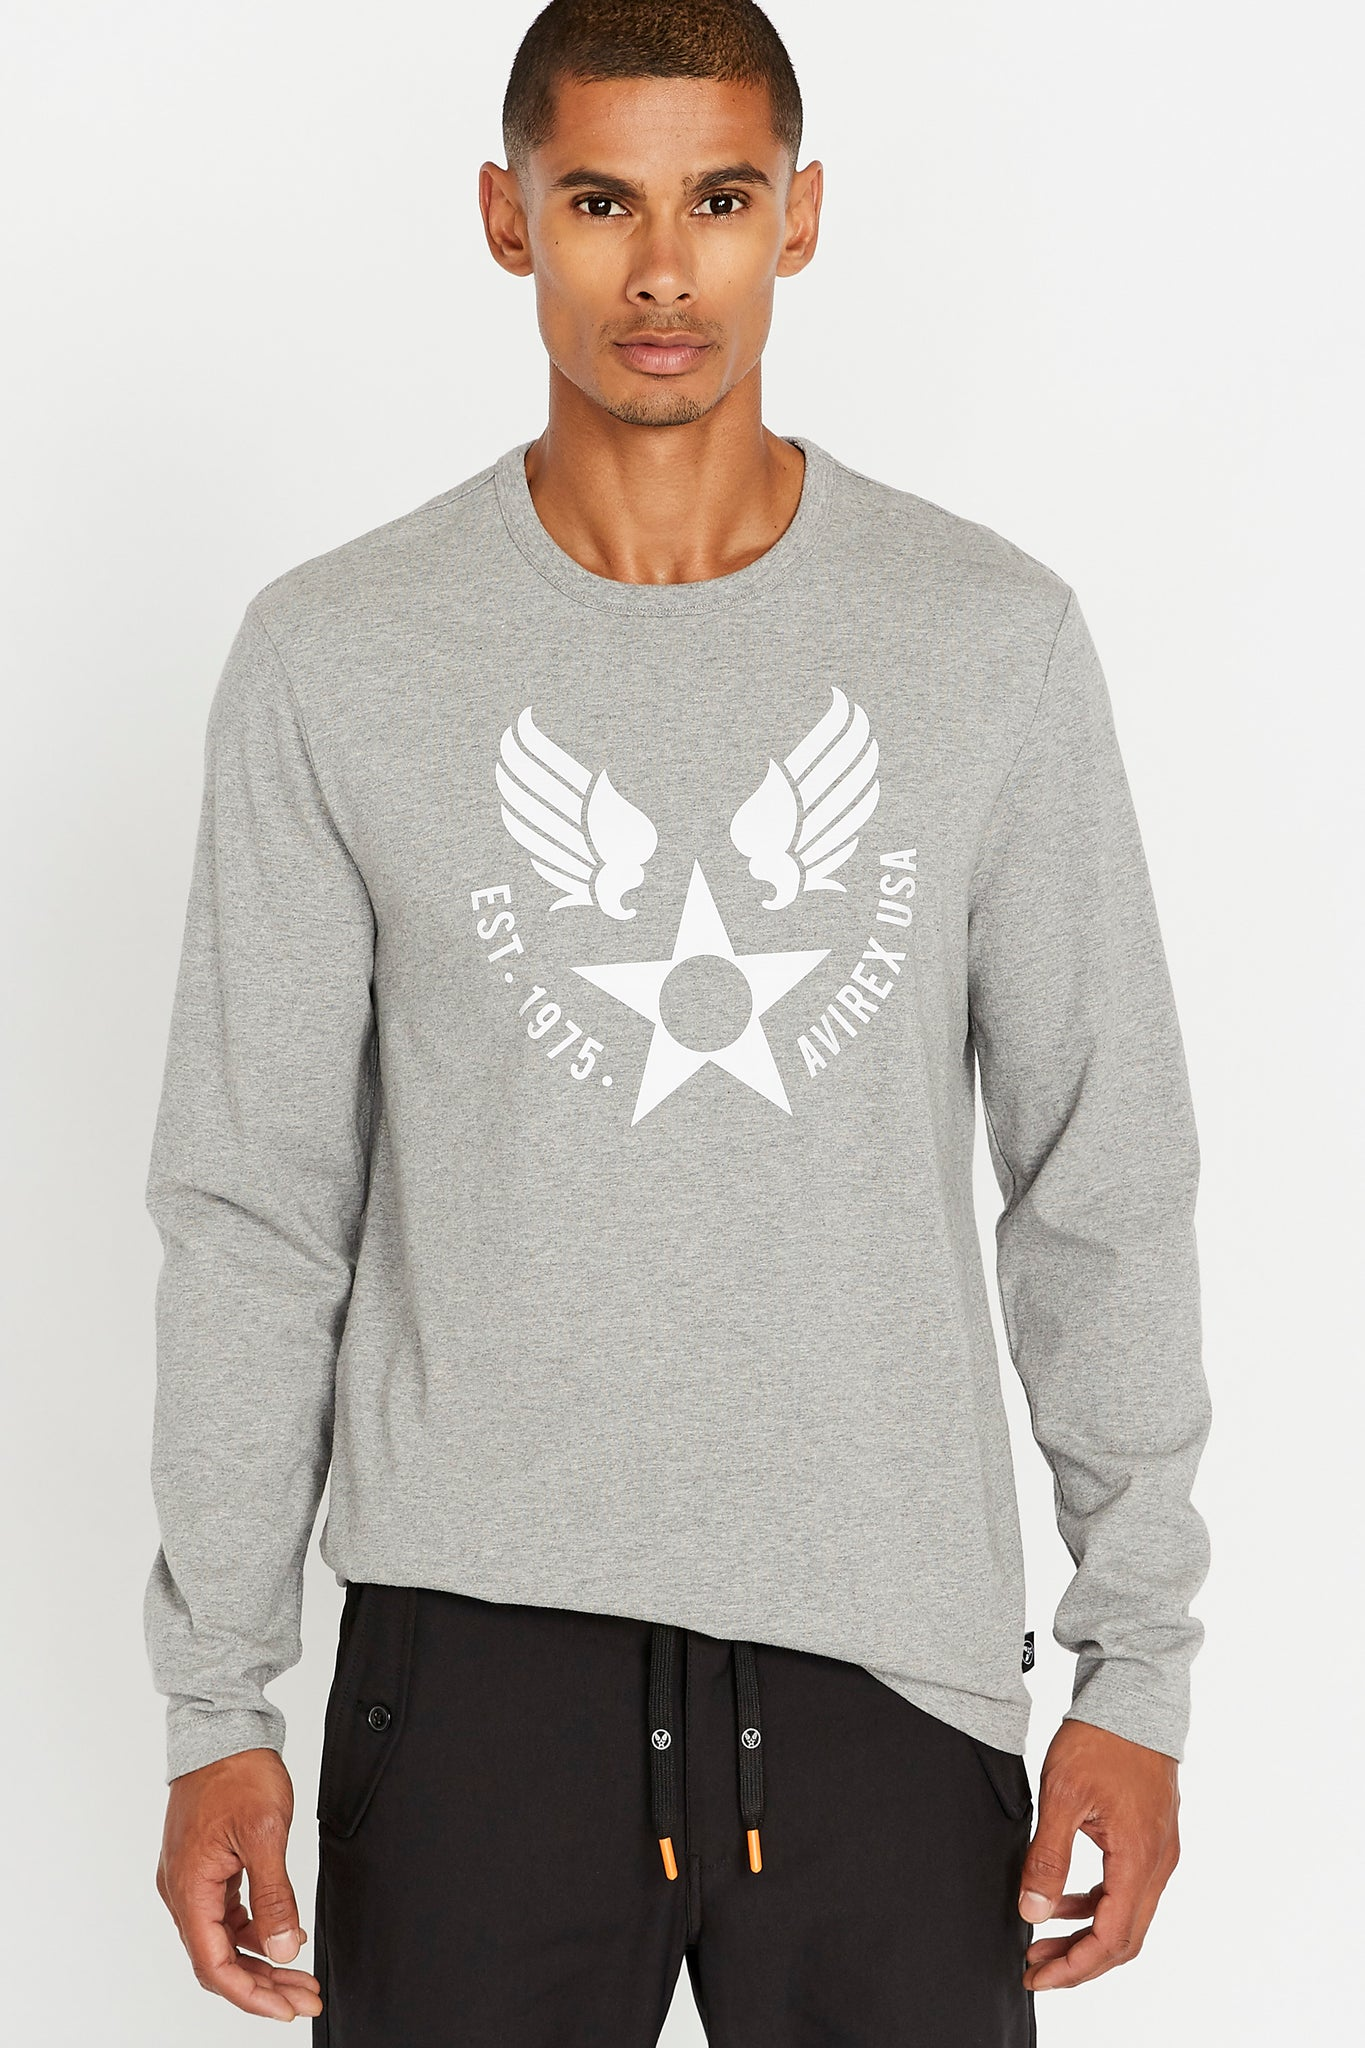 Men wearing a light grey long sleeve crew neck T-shirt with round logo graphic print on chest